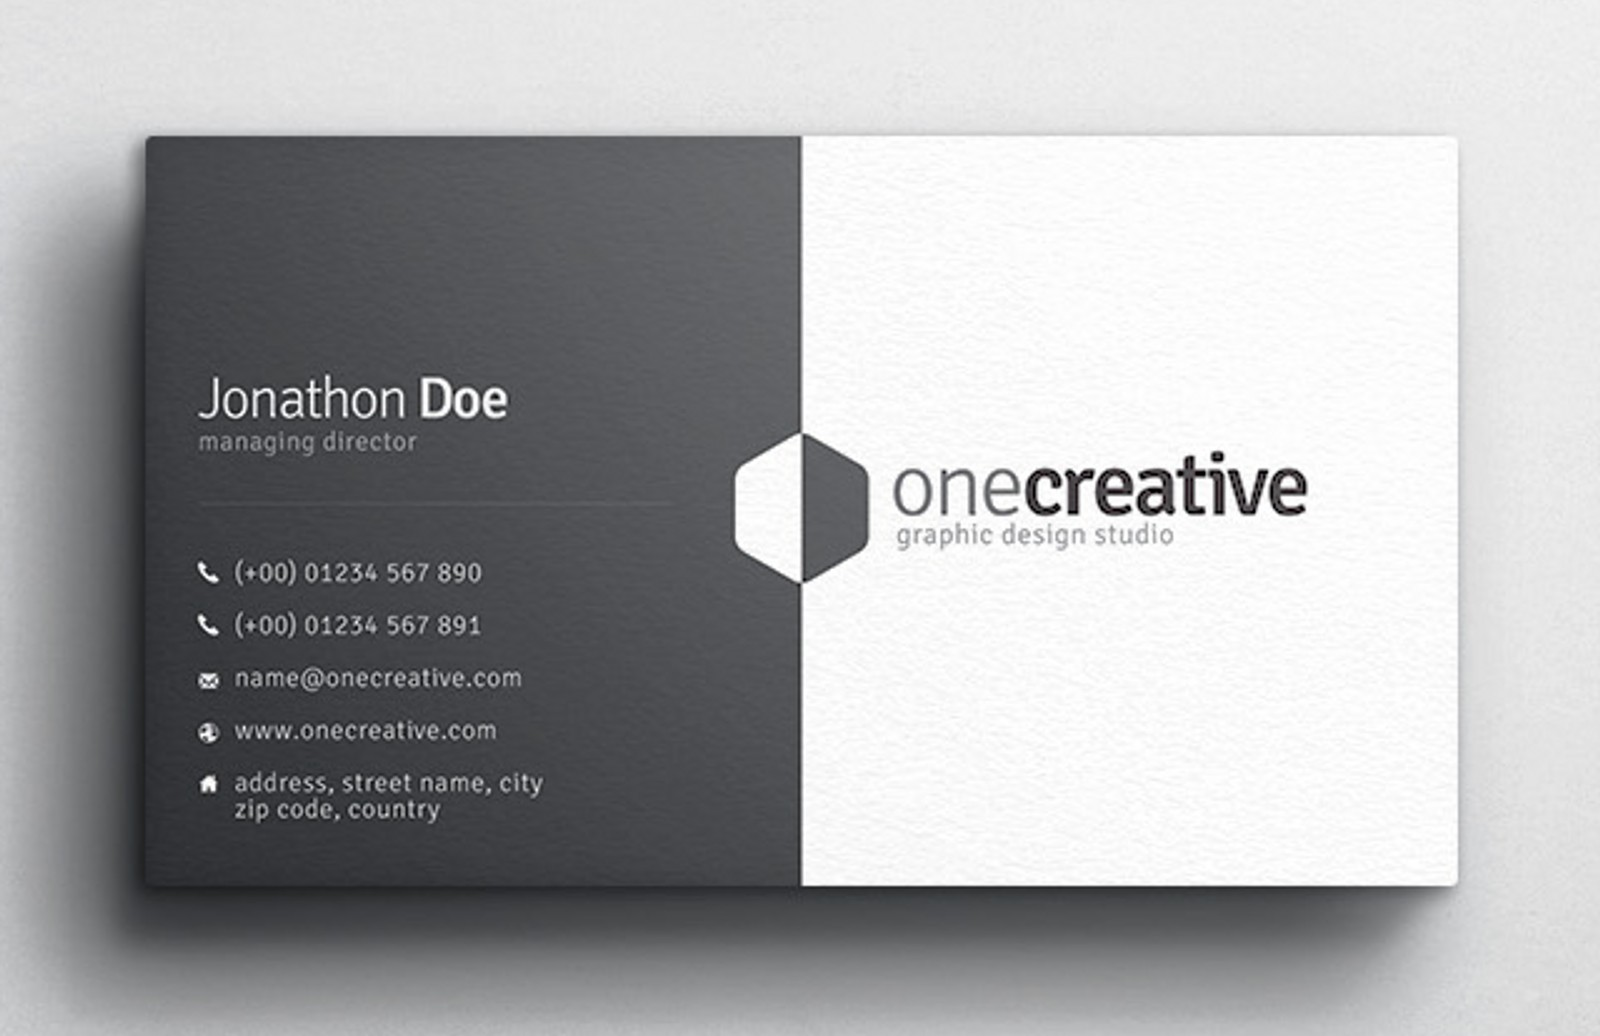 Duo business card design medialoot duo business card design friedricerecipe Gallery